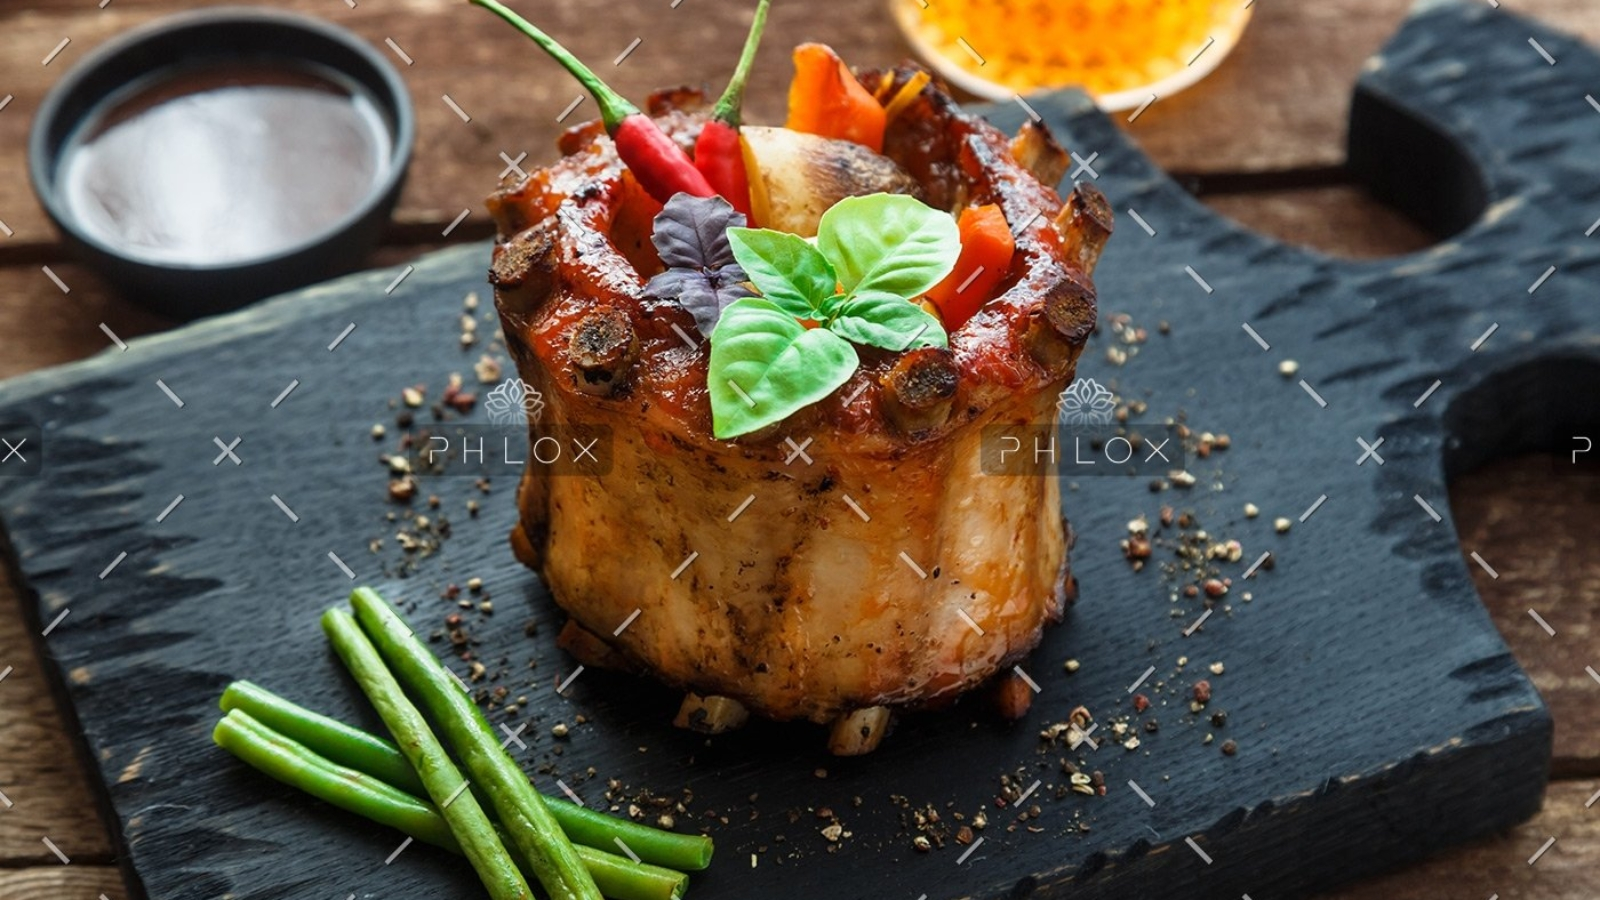 demo-attachment-16-roasted-pork-ribs-crown-with-soy-sauce-honey-and-PMD9QBX